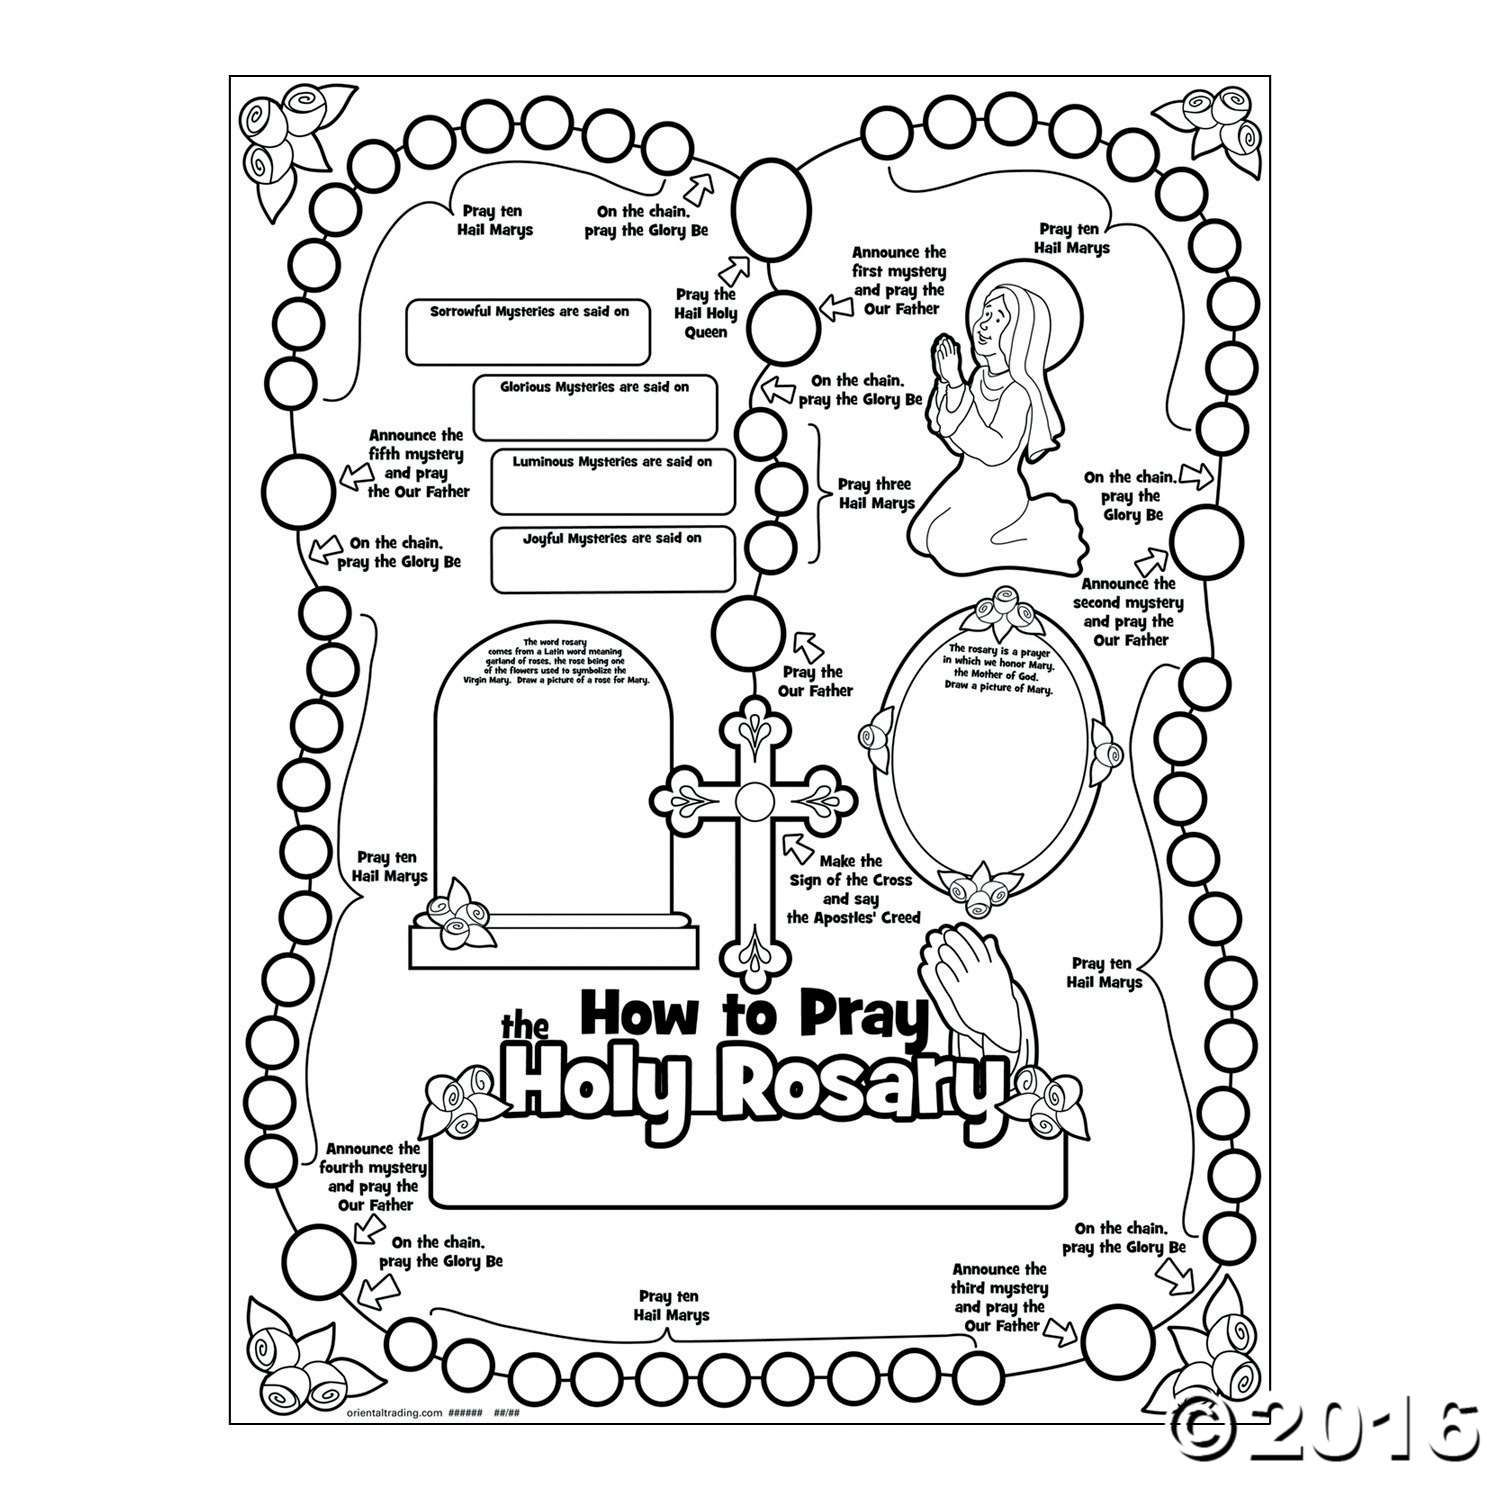 Teach Kids How To Pray The Rosary By Coloring This Poster As A Sunday School Craft Each Has Space For Your Name And Lessons They Learn Paper